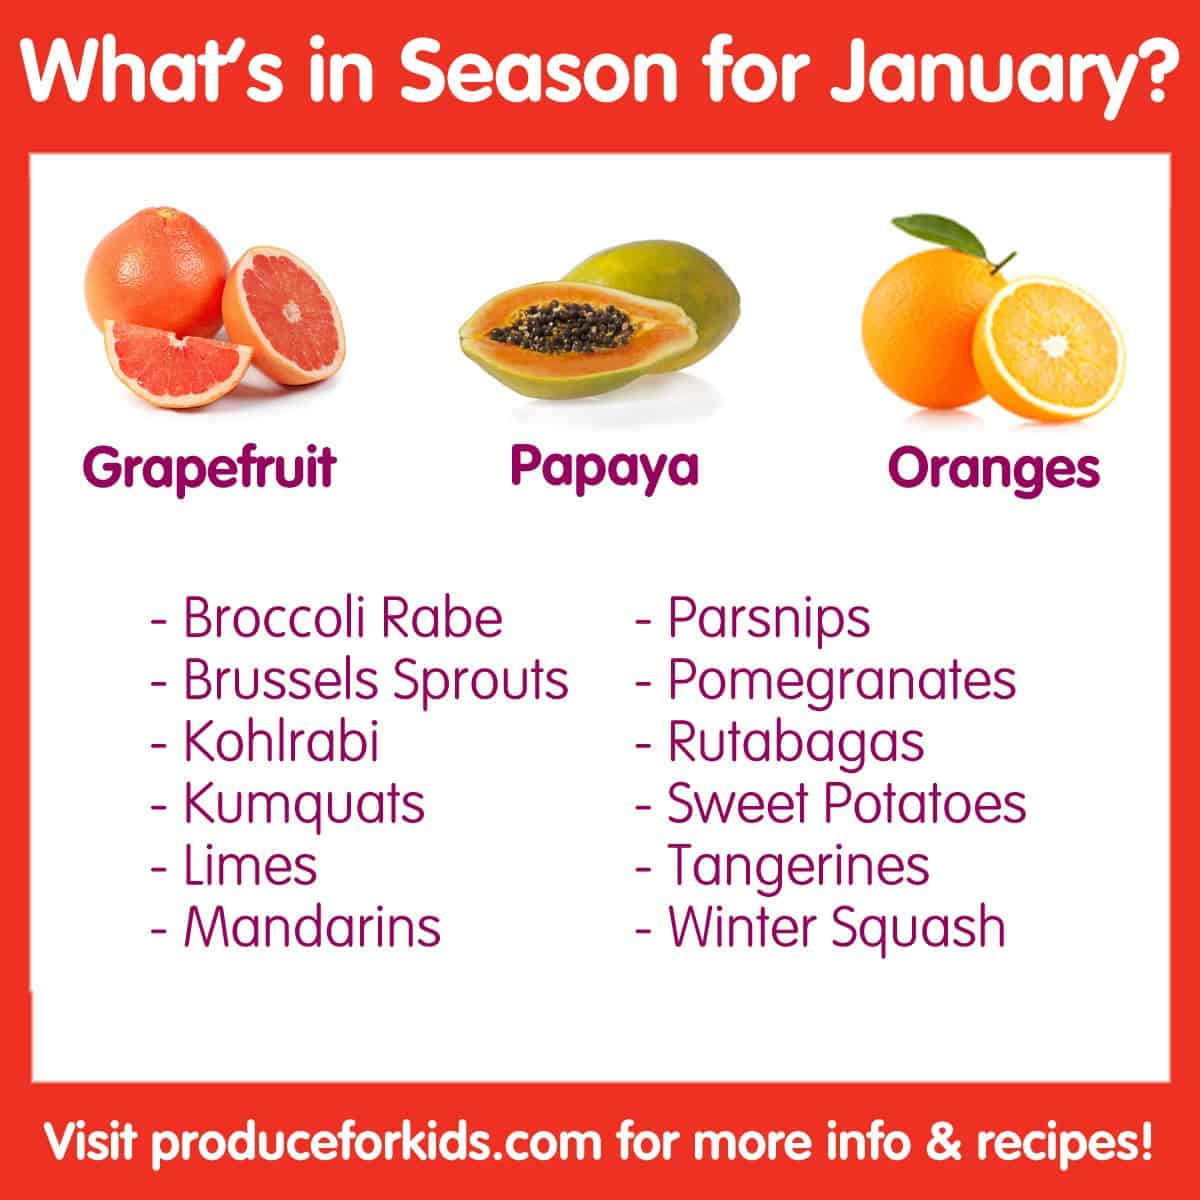 What's in Season for January?